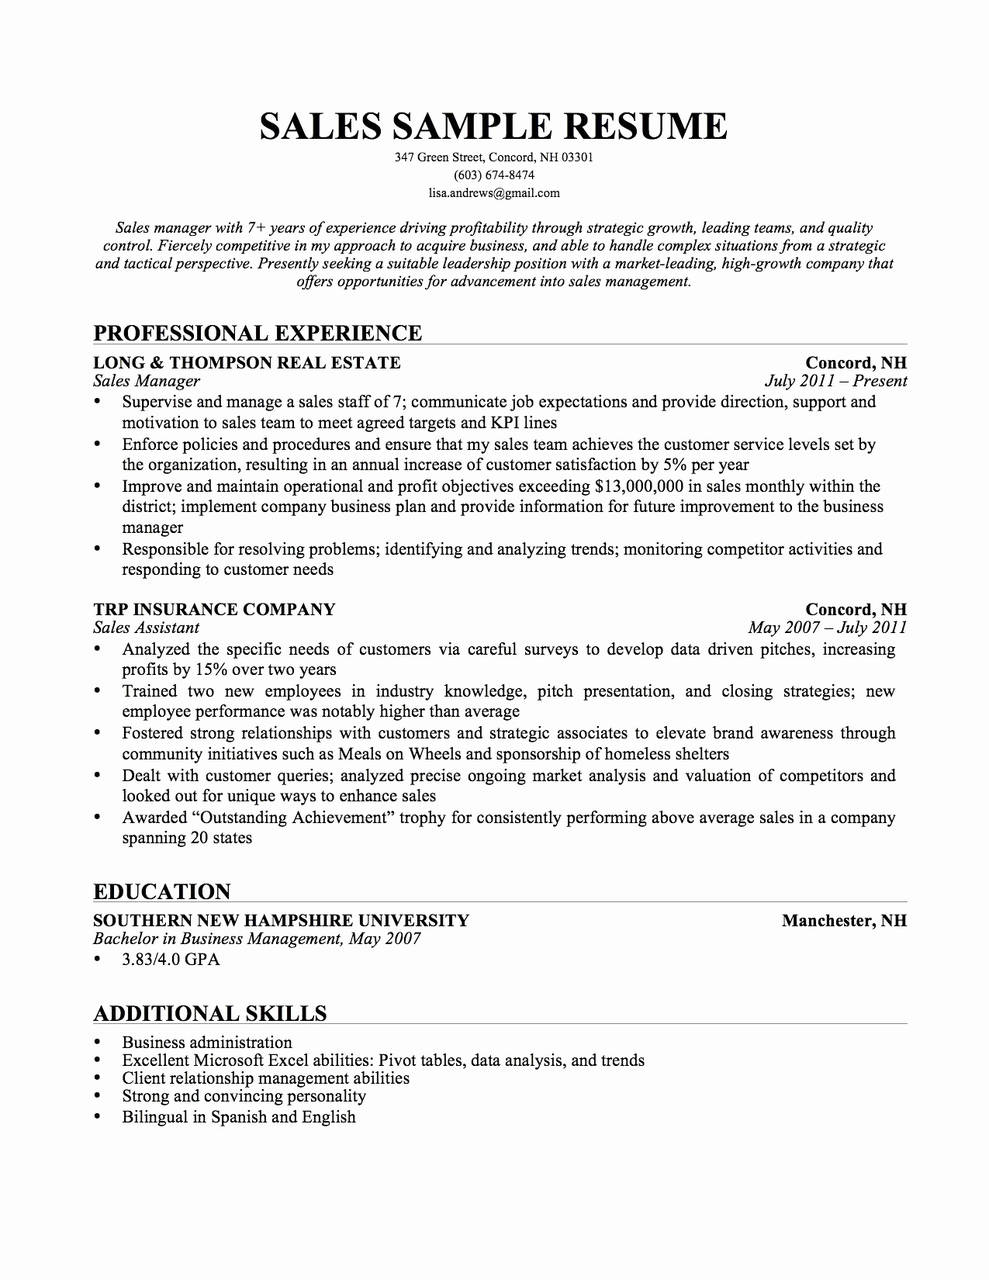 My Perfect Resume Review - My Perfect Resume Cancel New 18 Luxury My Perfect Resume Phone